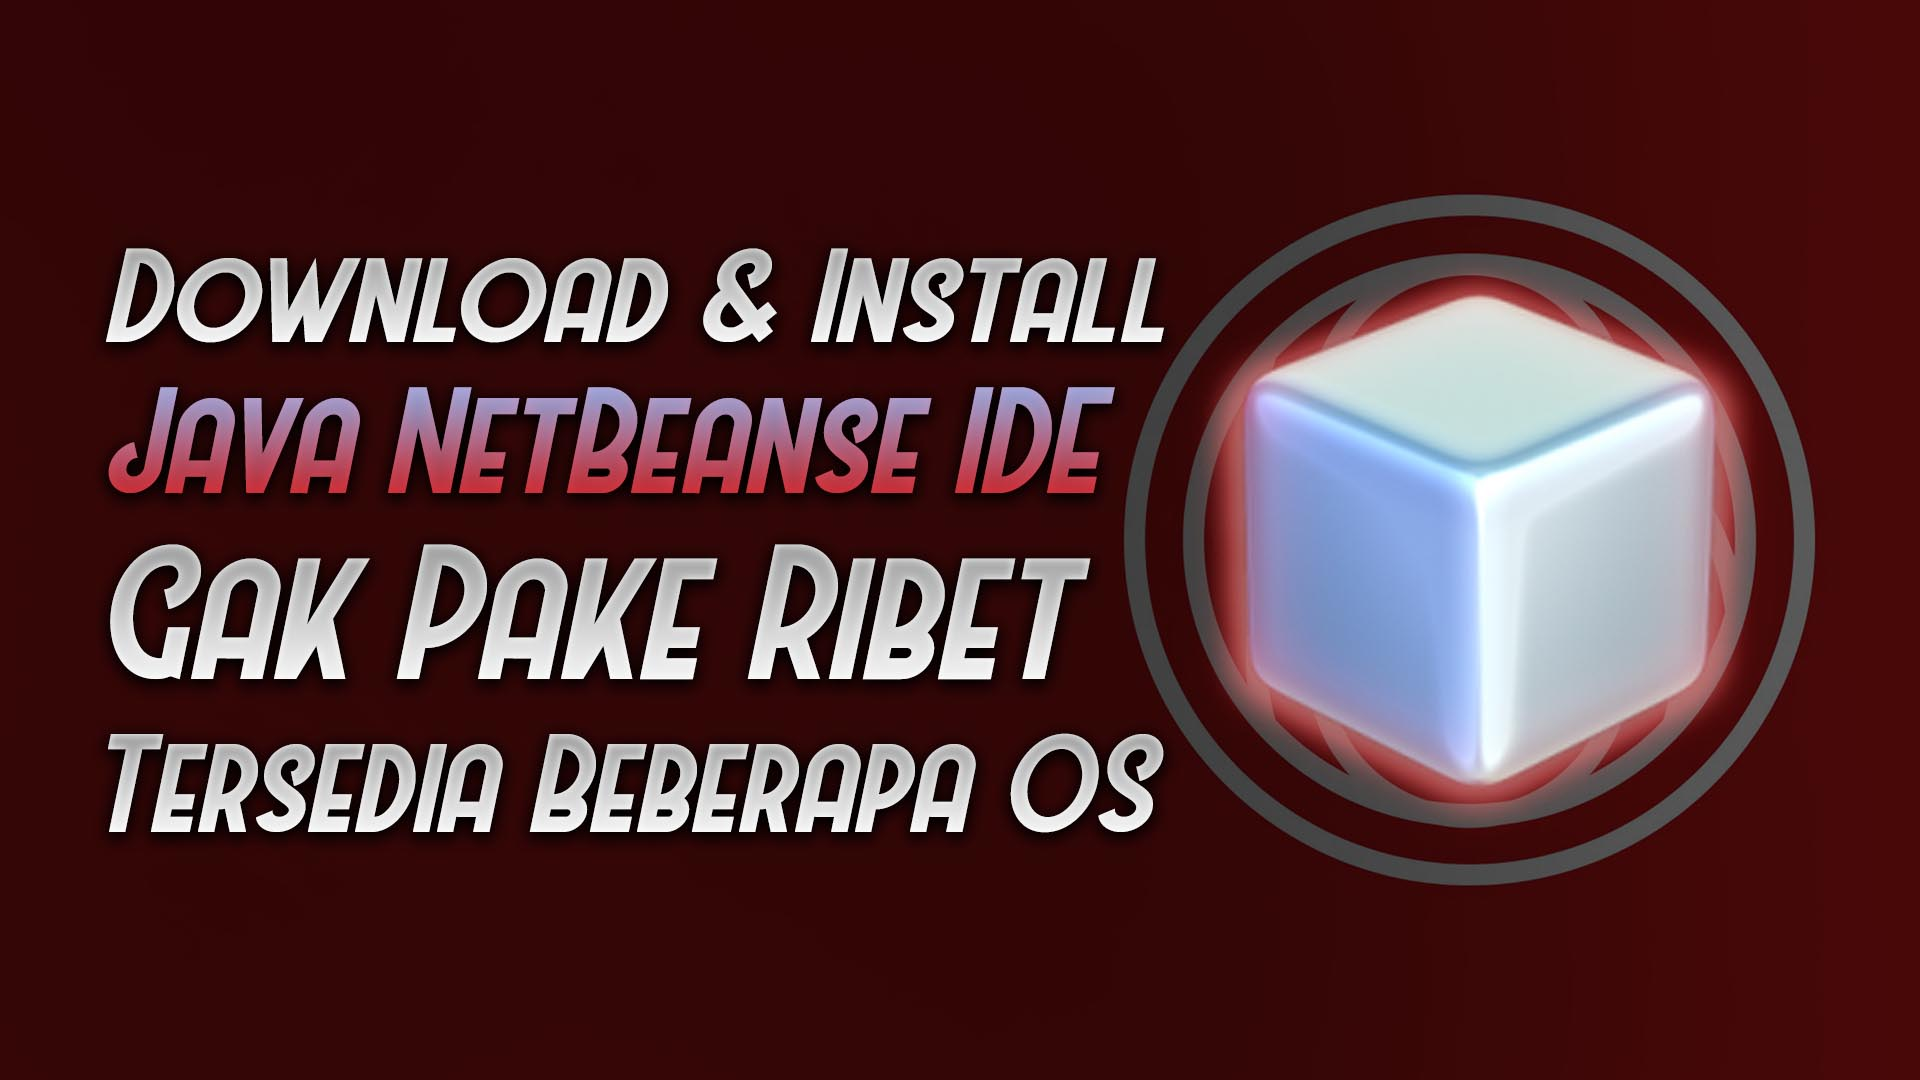 freee download install java netbeans windows - rio bermano